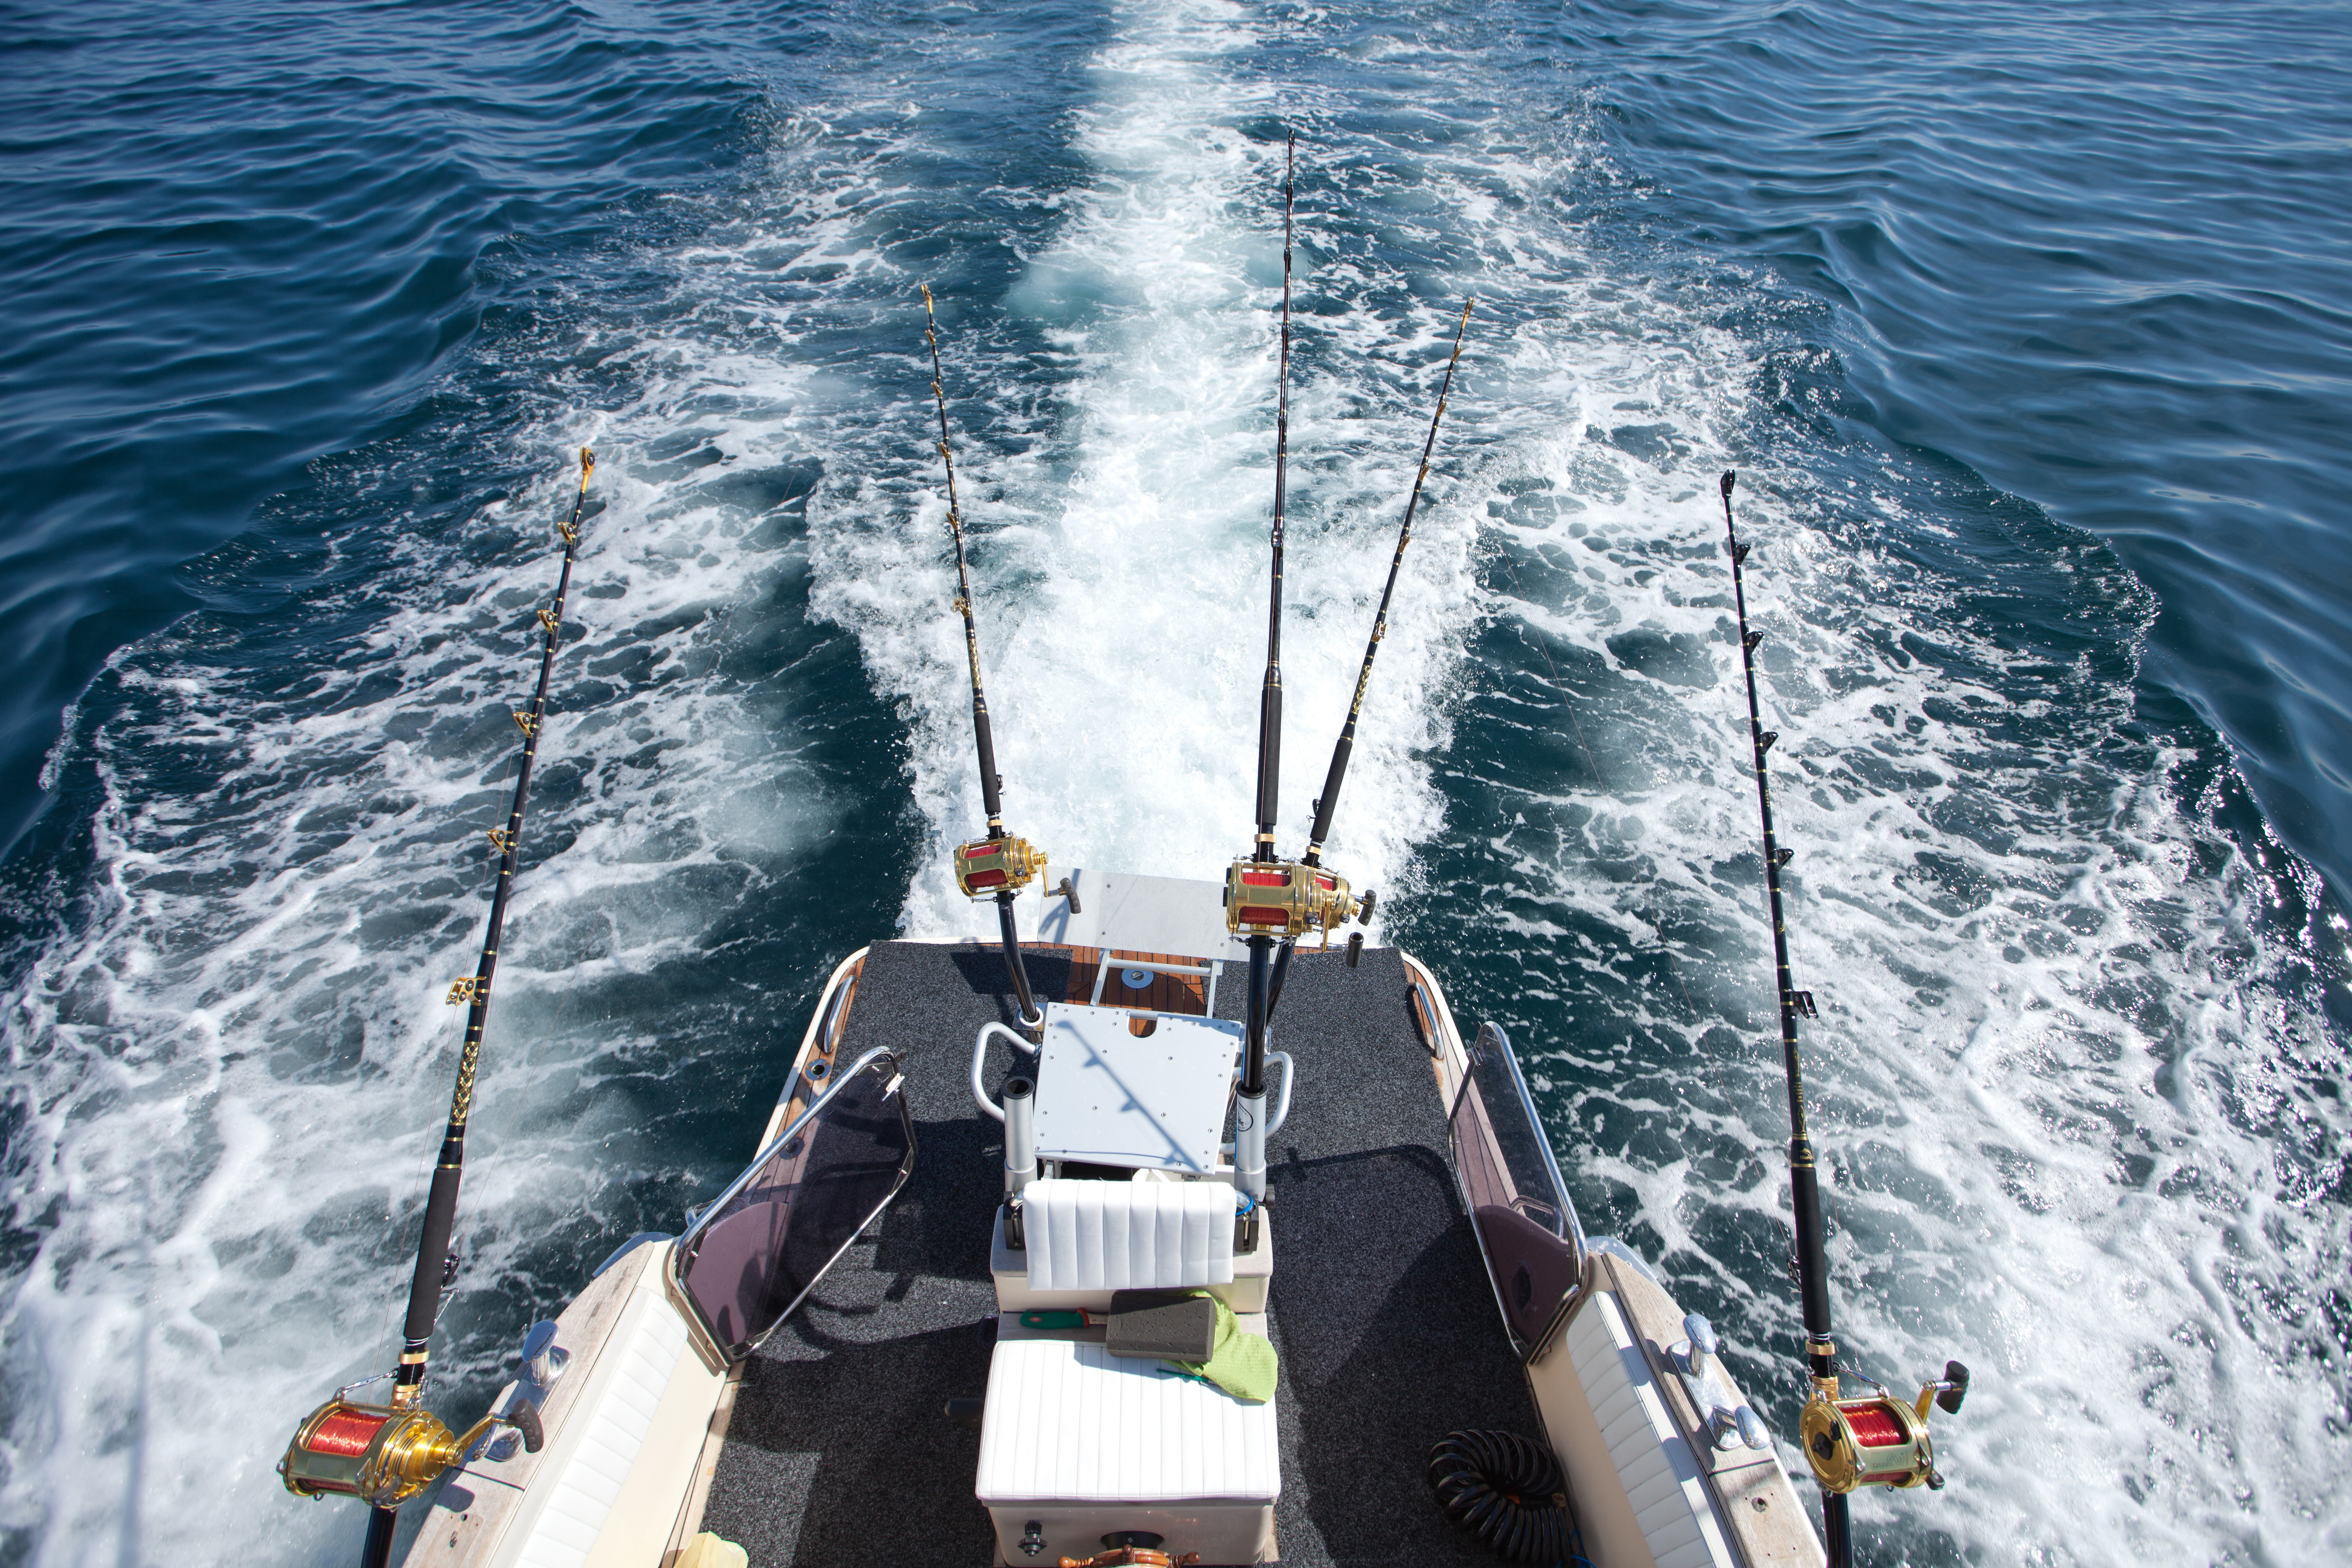 Fishing license reform bill placed on Suspense File